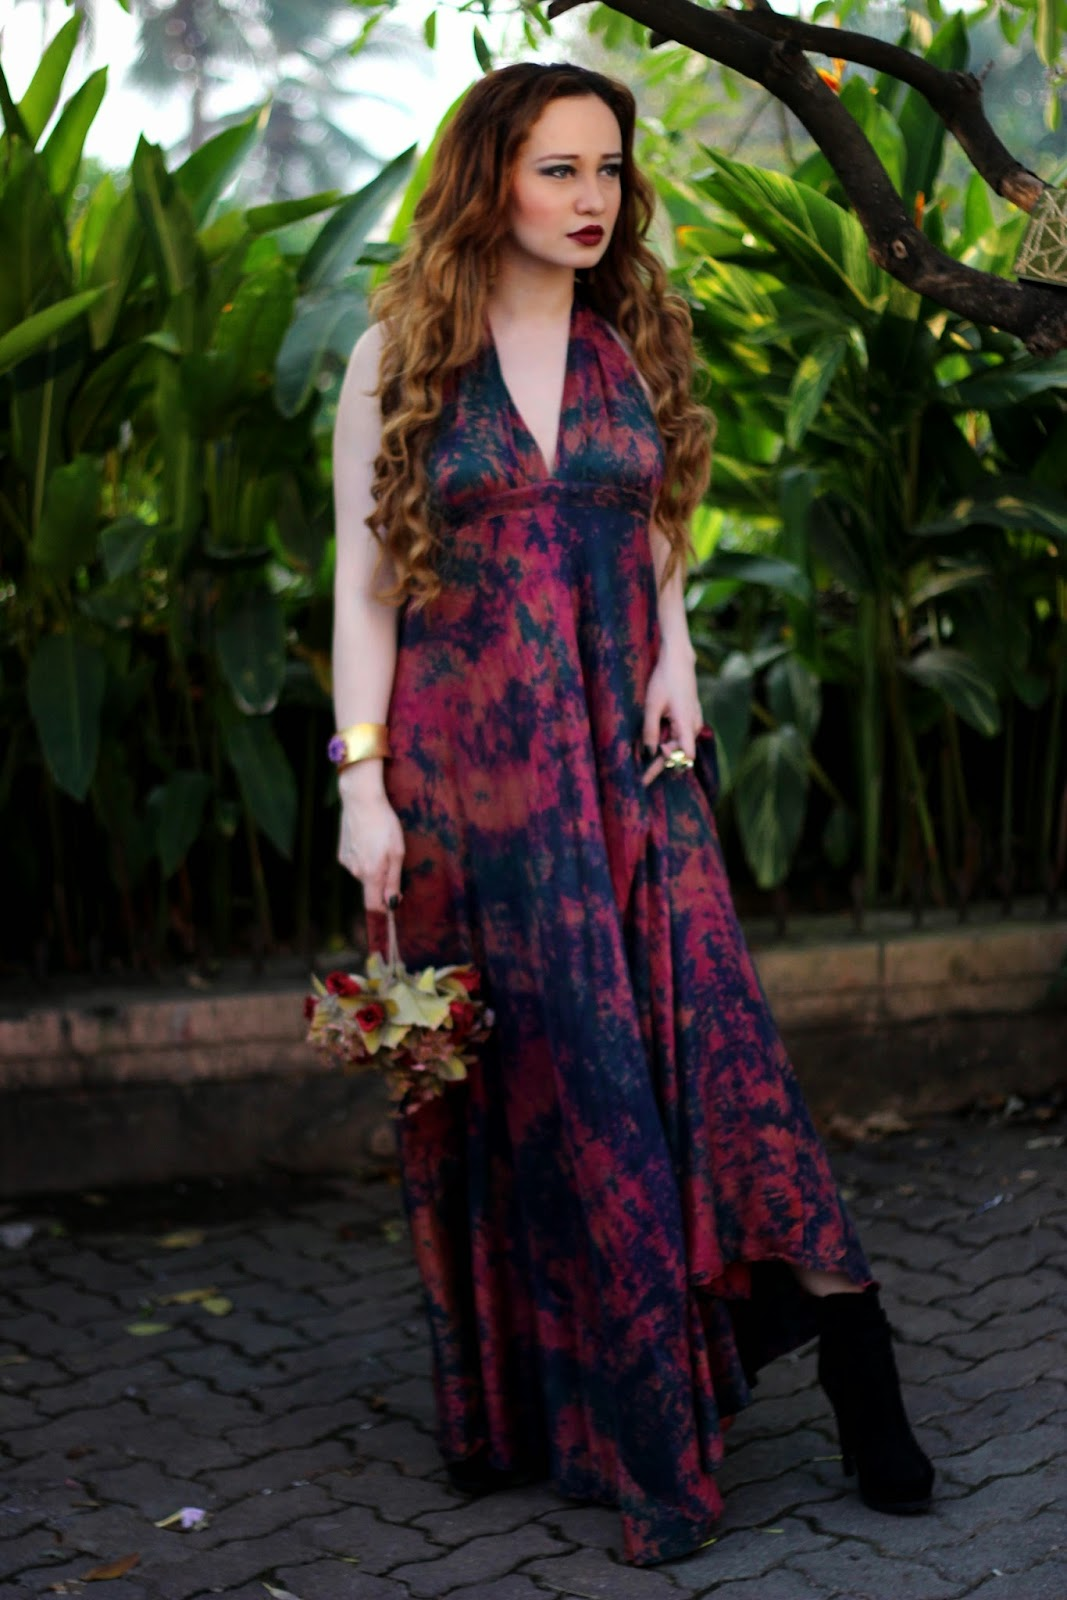 Batik Silk Maxi Dress, Bordeaux Lips